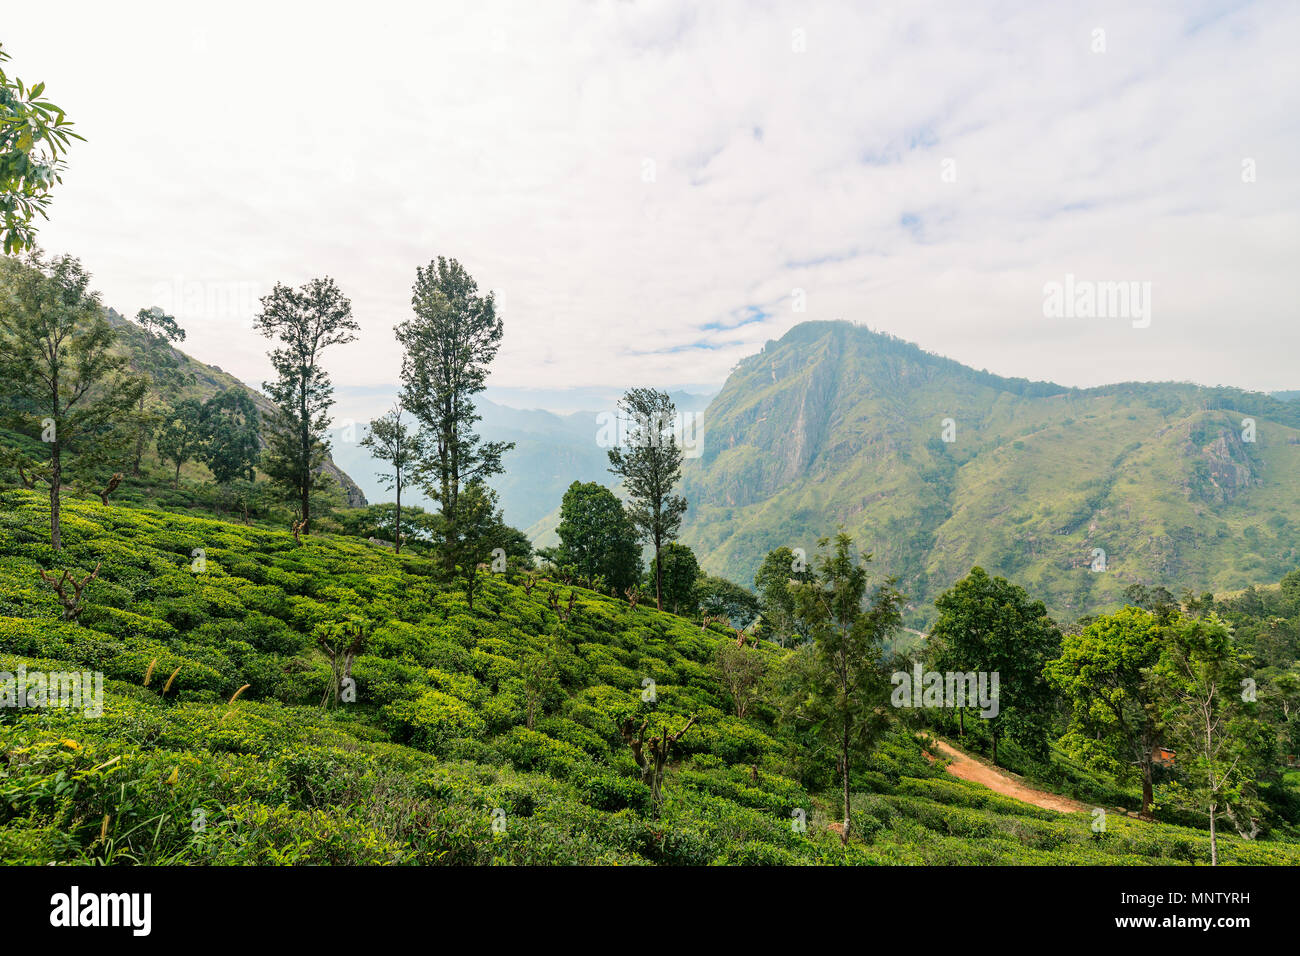 Breathtaking views over mountains and tea plantations from Little Adams peak hiking trail in Ella Sri Lanka Stock Photo